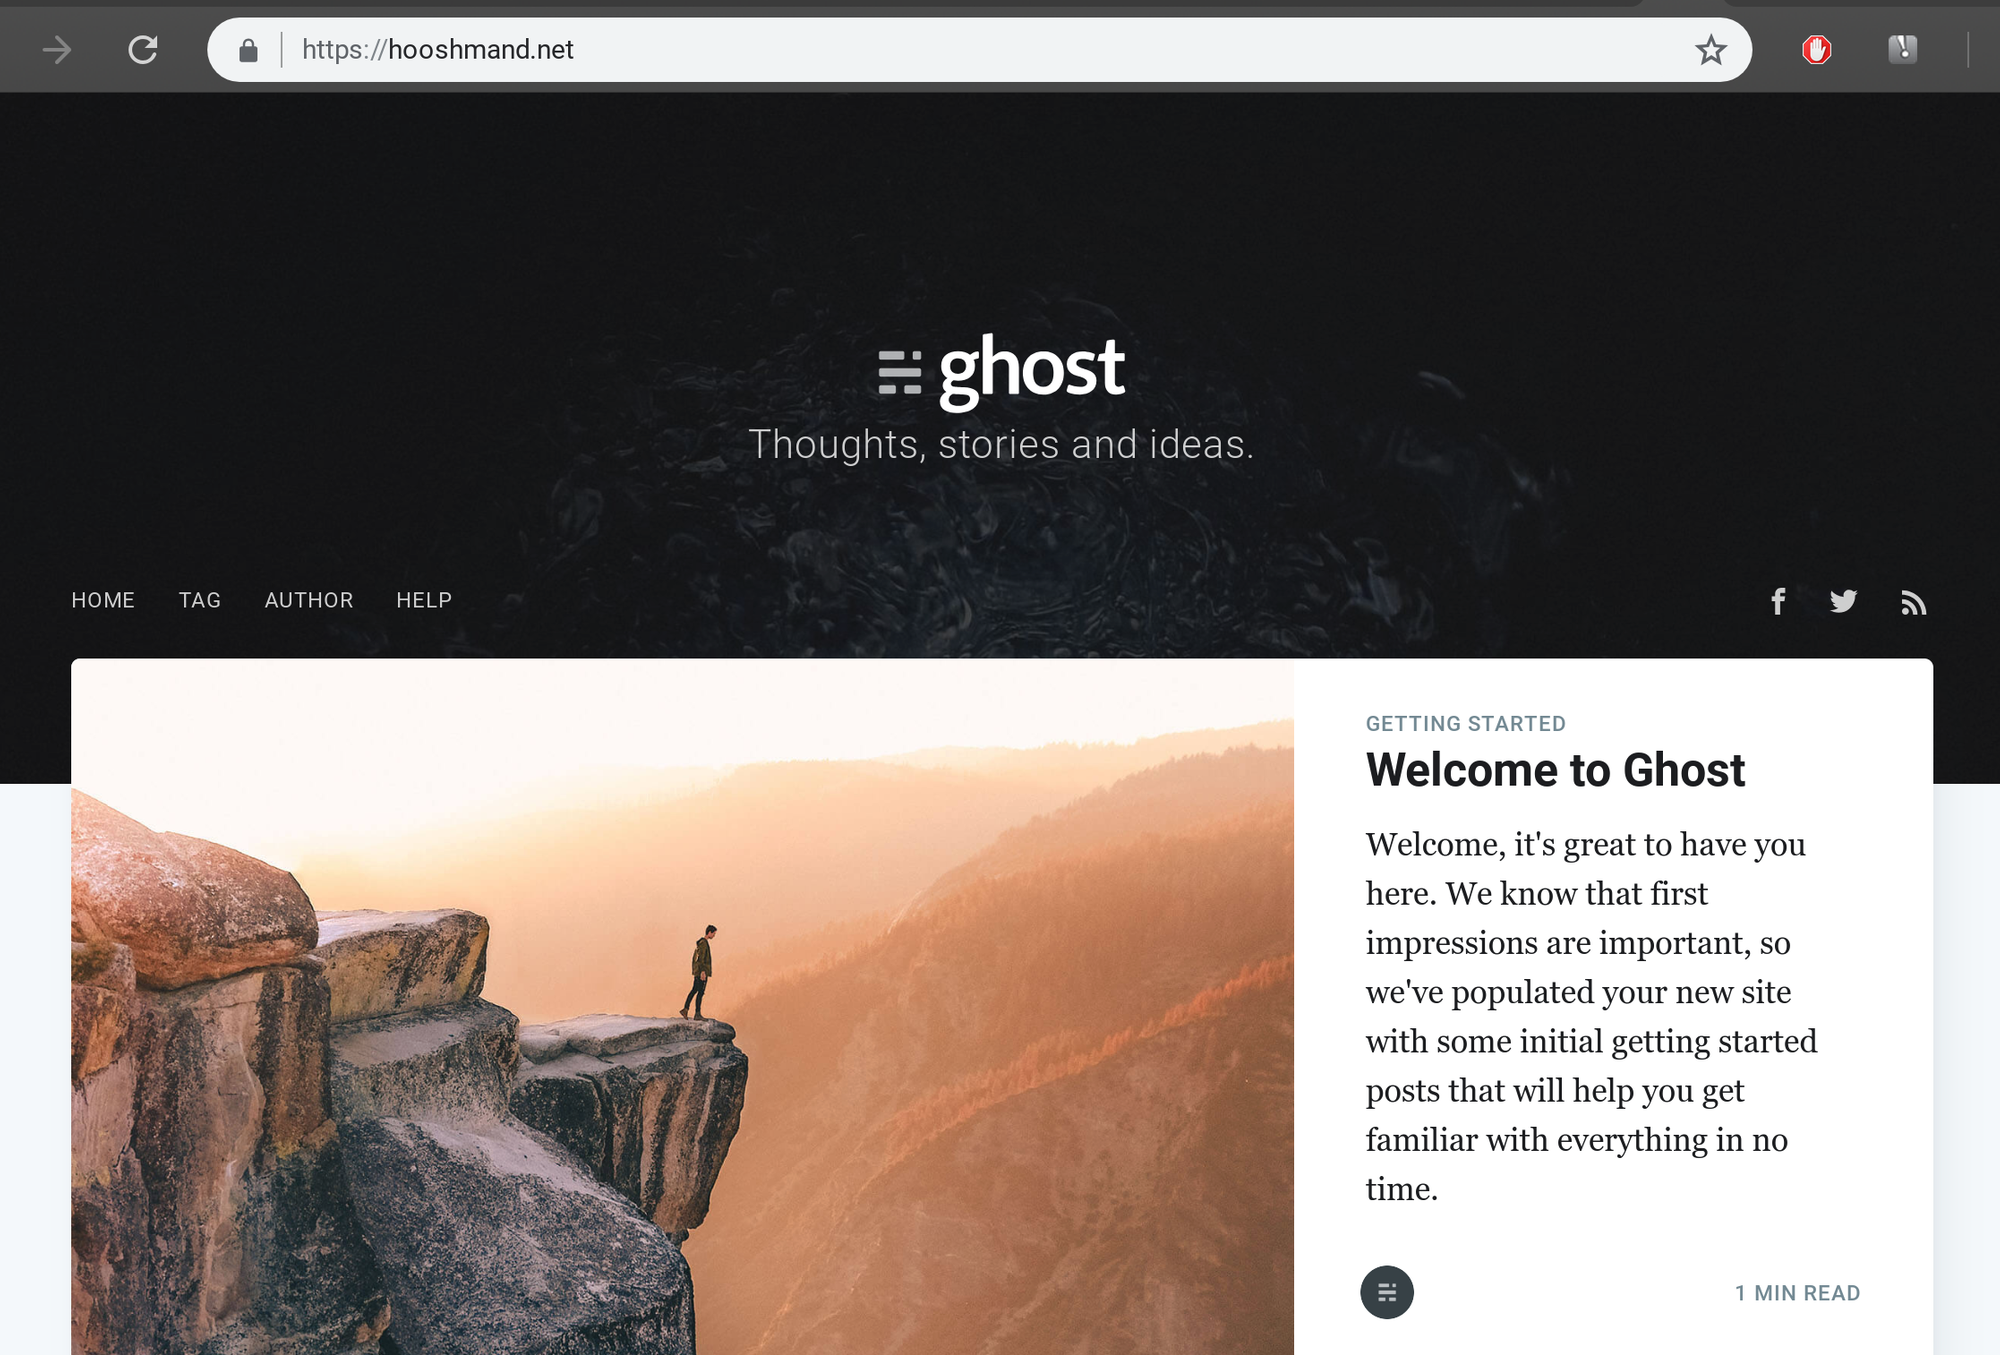 How to host multiple Ghost blogs/websites on one $5/month server in 30 minutes (or less) and save money